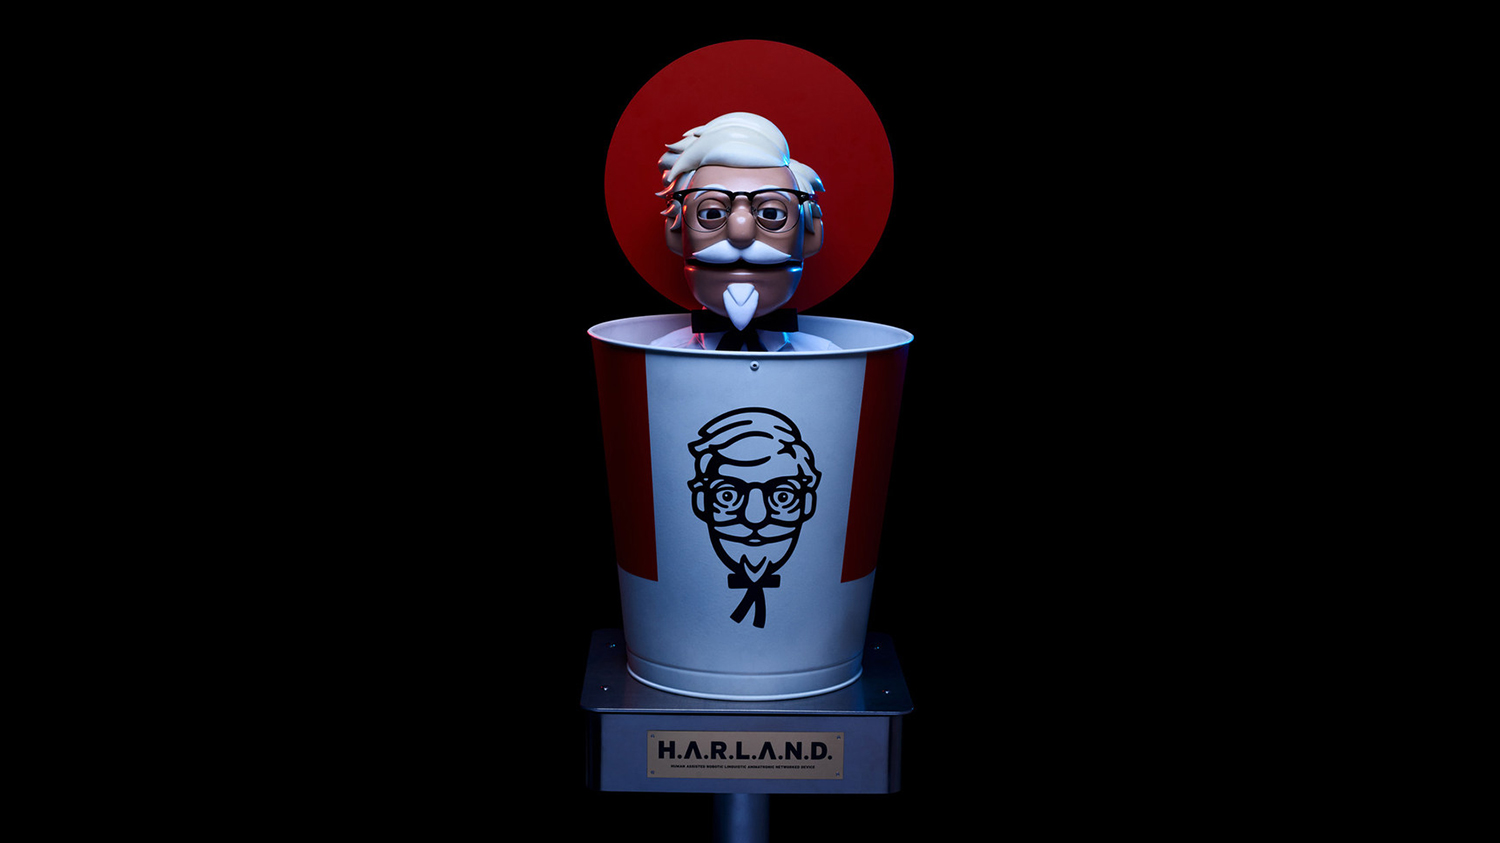 KFC Made a Robot Colonel Sanders for the Drive Thru